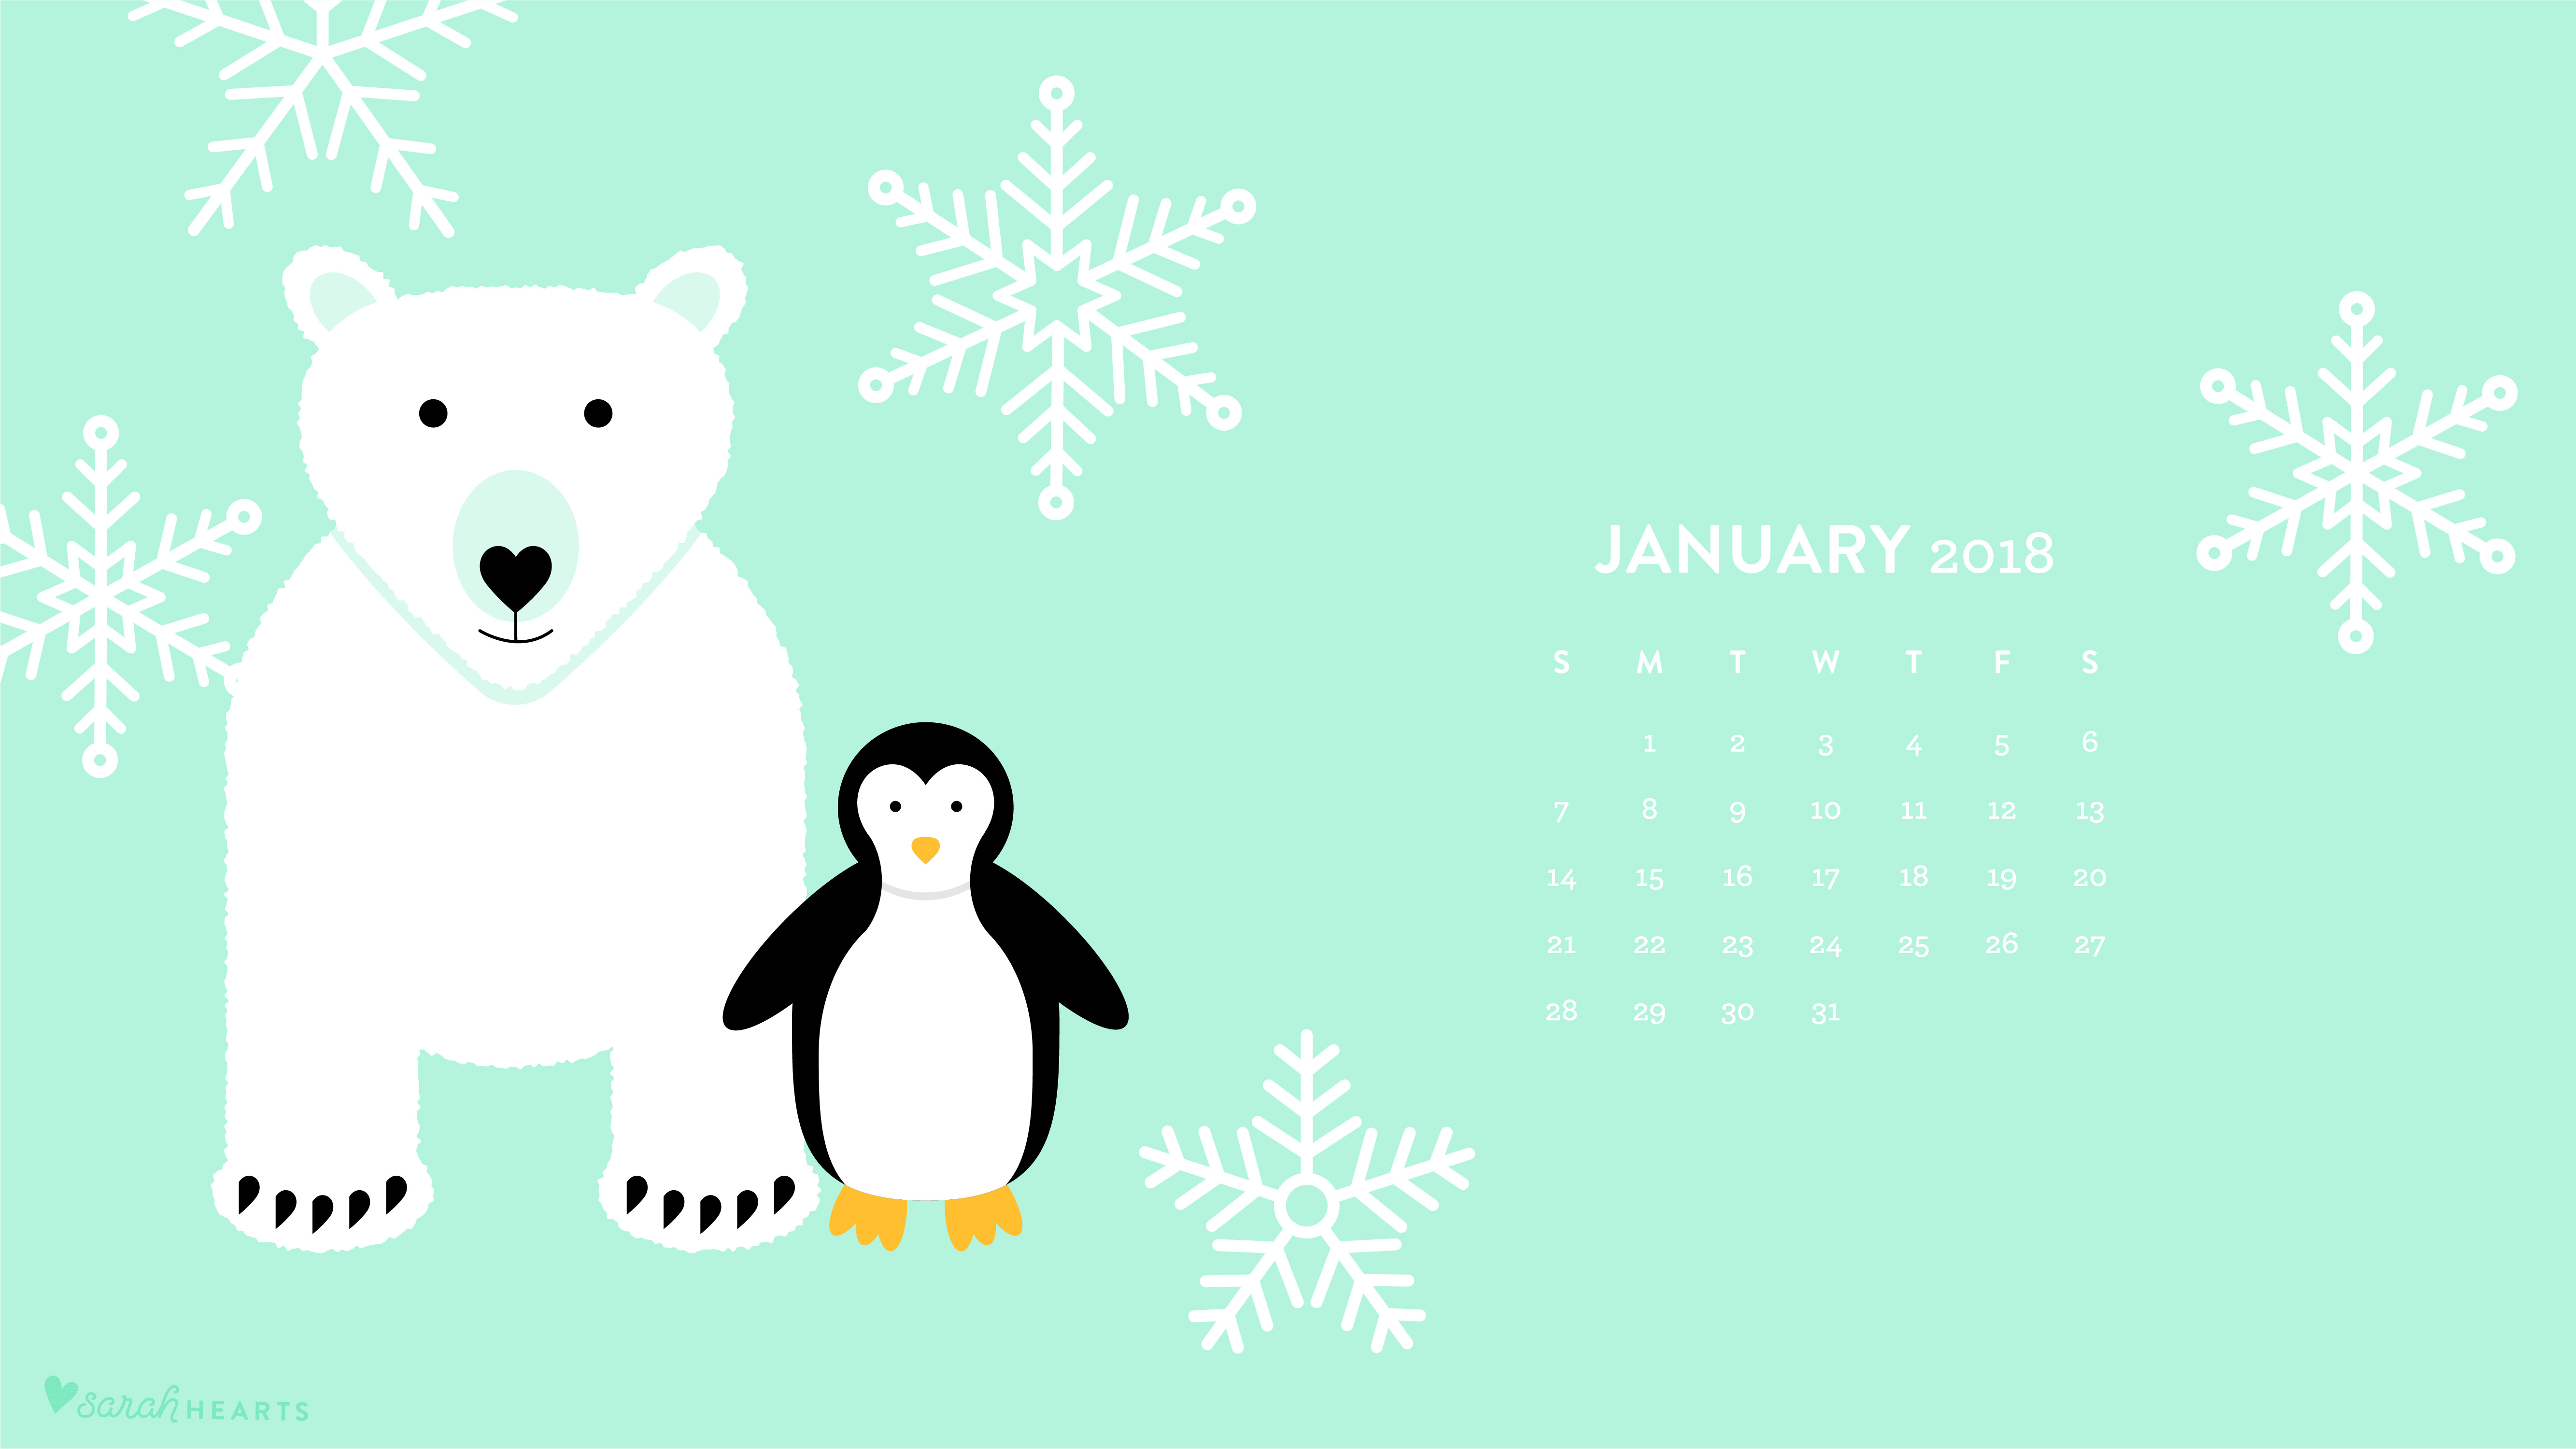 polar bear and penguin january 2018 calendar wallpaper - sarah hearts